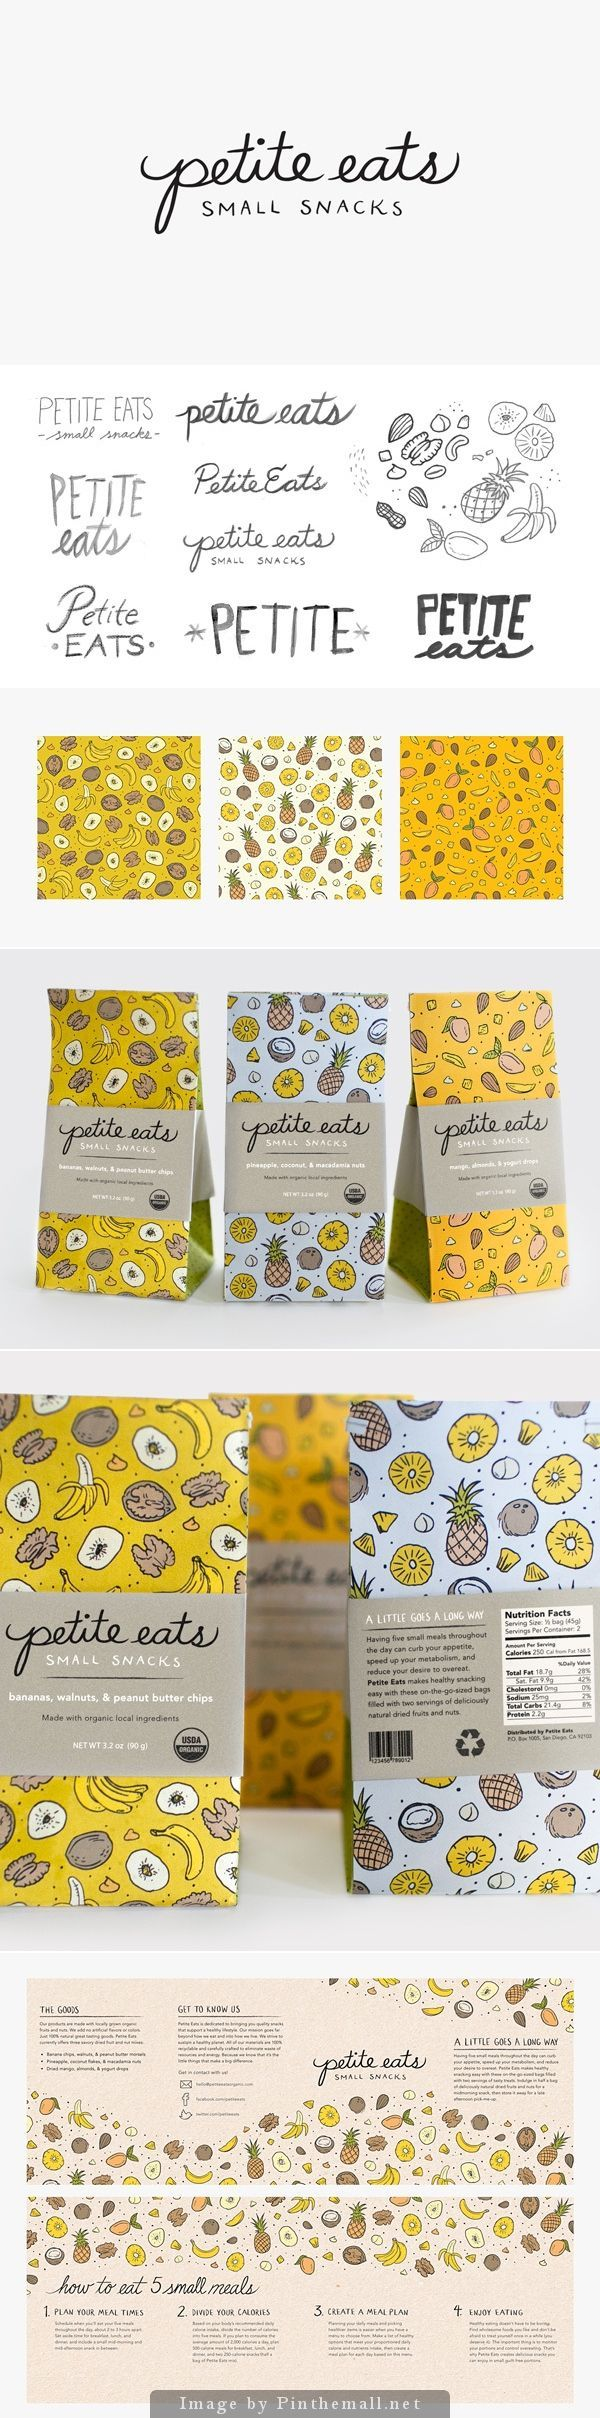 Petit Eats Healthy Snack Foods Packaging Design www.lab333.com https://www.facebook.com/pages/LAB-STYLE/585086788169863 http://prize-survey.com lablikes.tumblr.com www.pinterest.com/labstyle